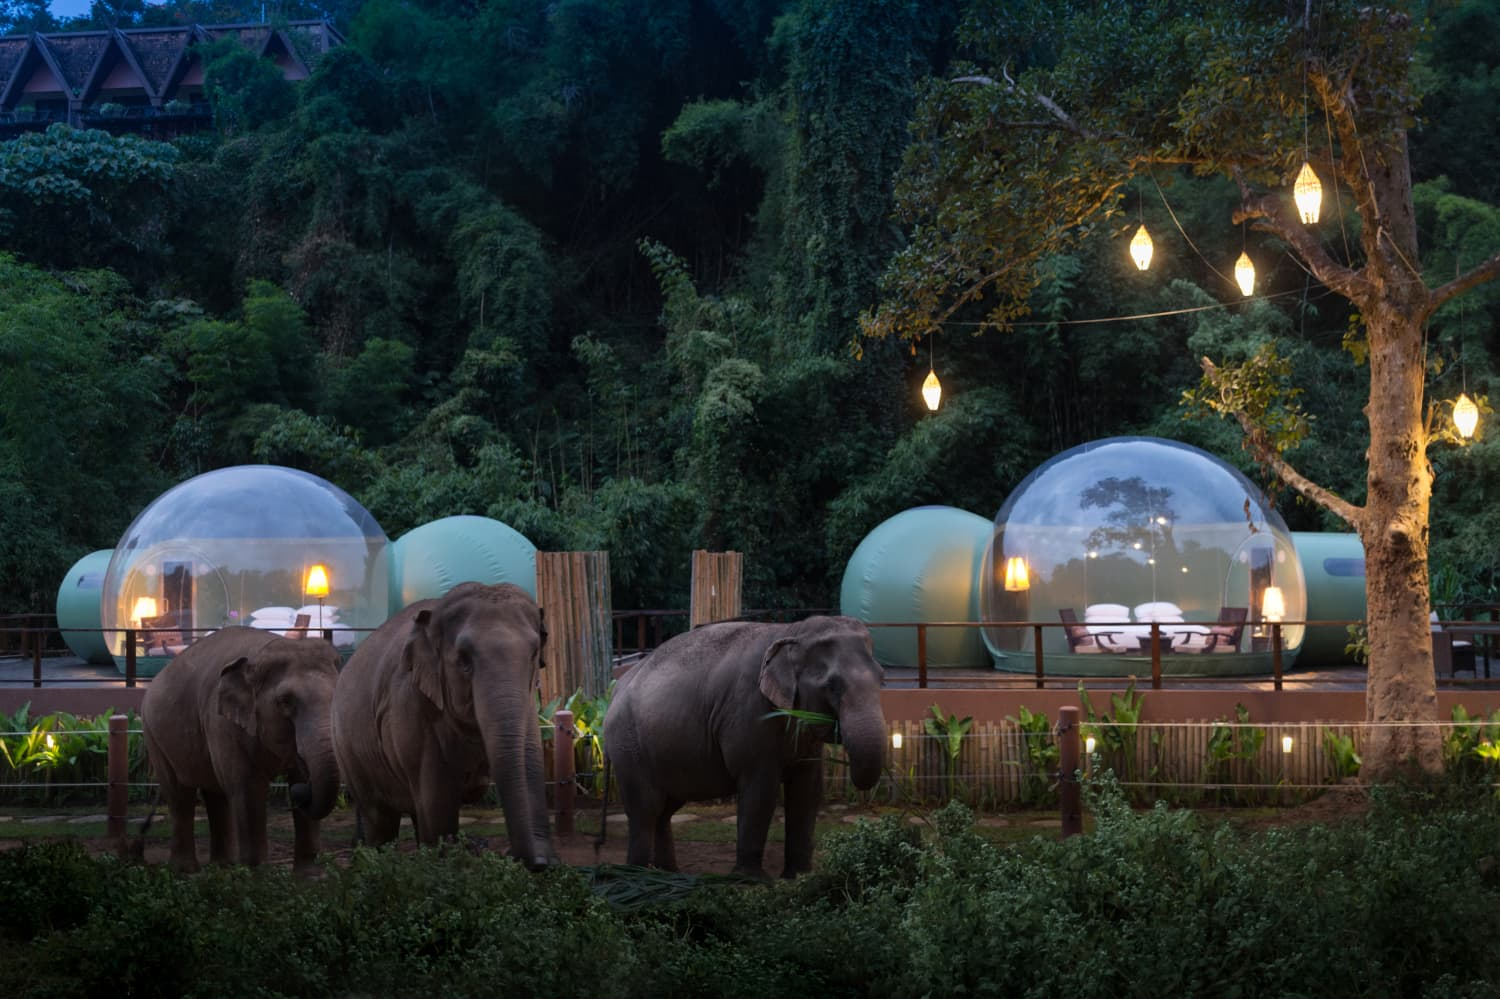 You Can Sleep Alongside Elephants in Thailand's Jungle Bubbles